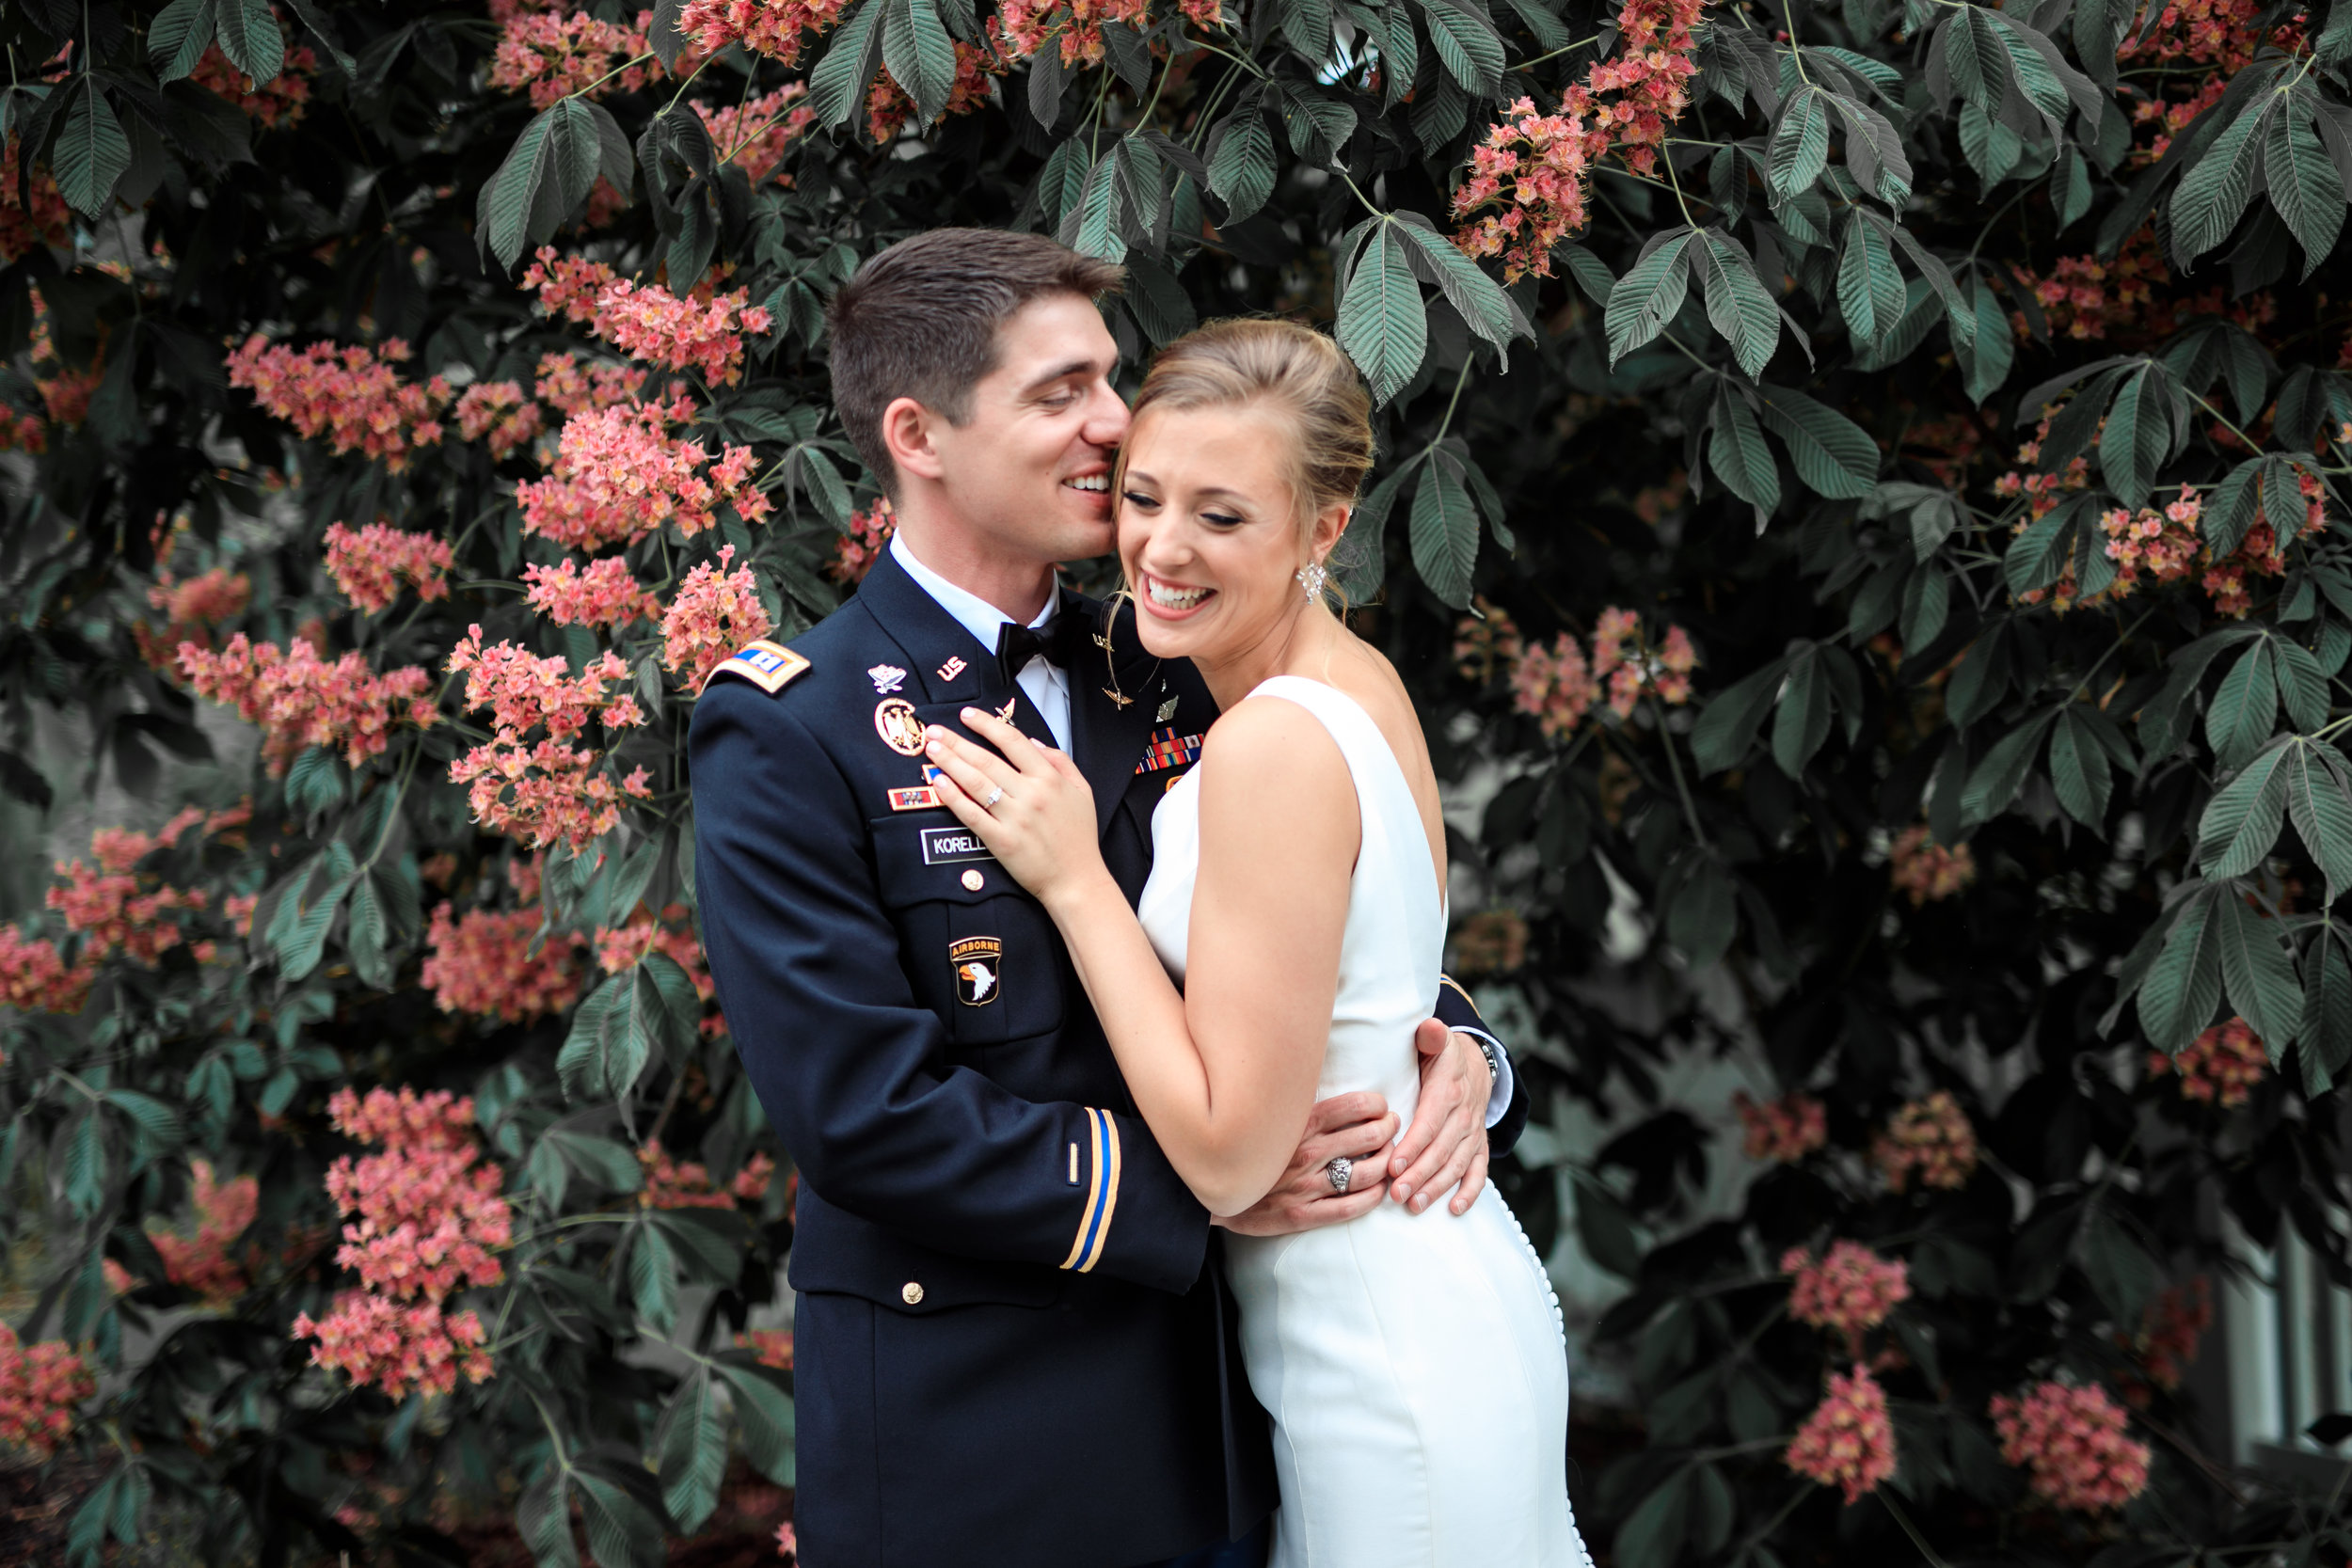 Centennial-Park-Munster-indiana-bride-and-groom-Lauren-ashley-studios-in-the-flowers.jpg